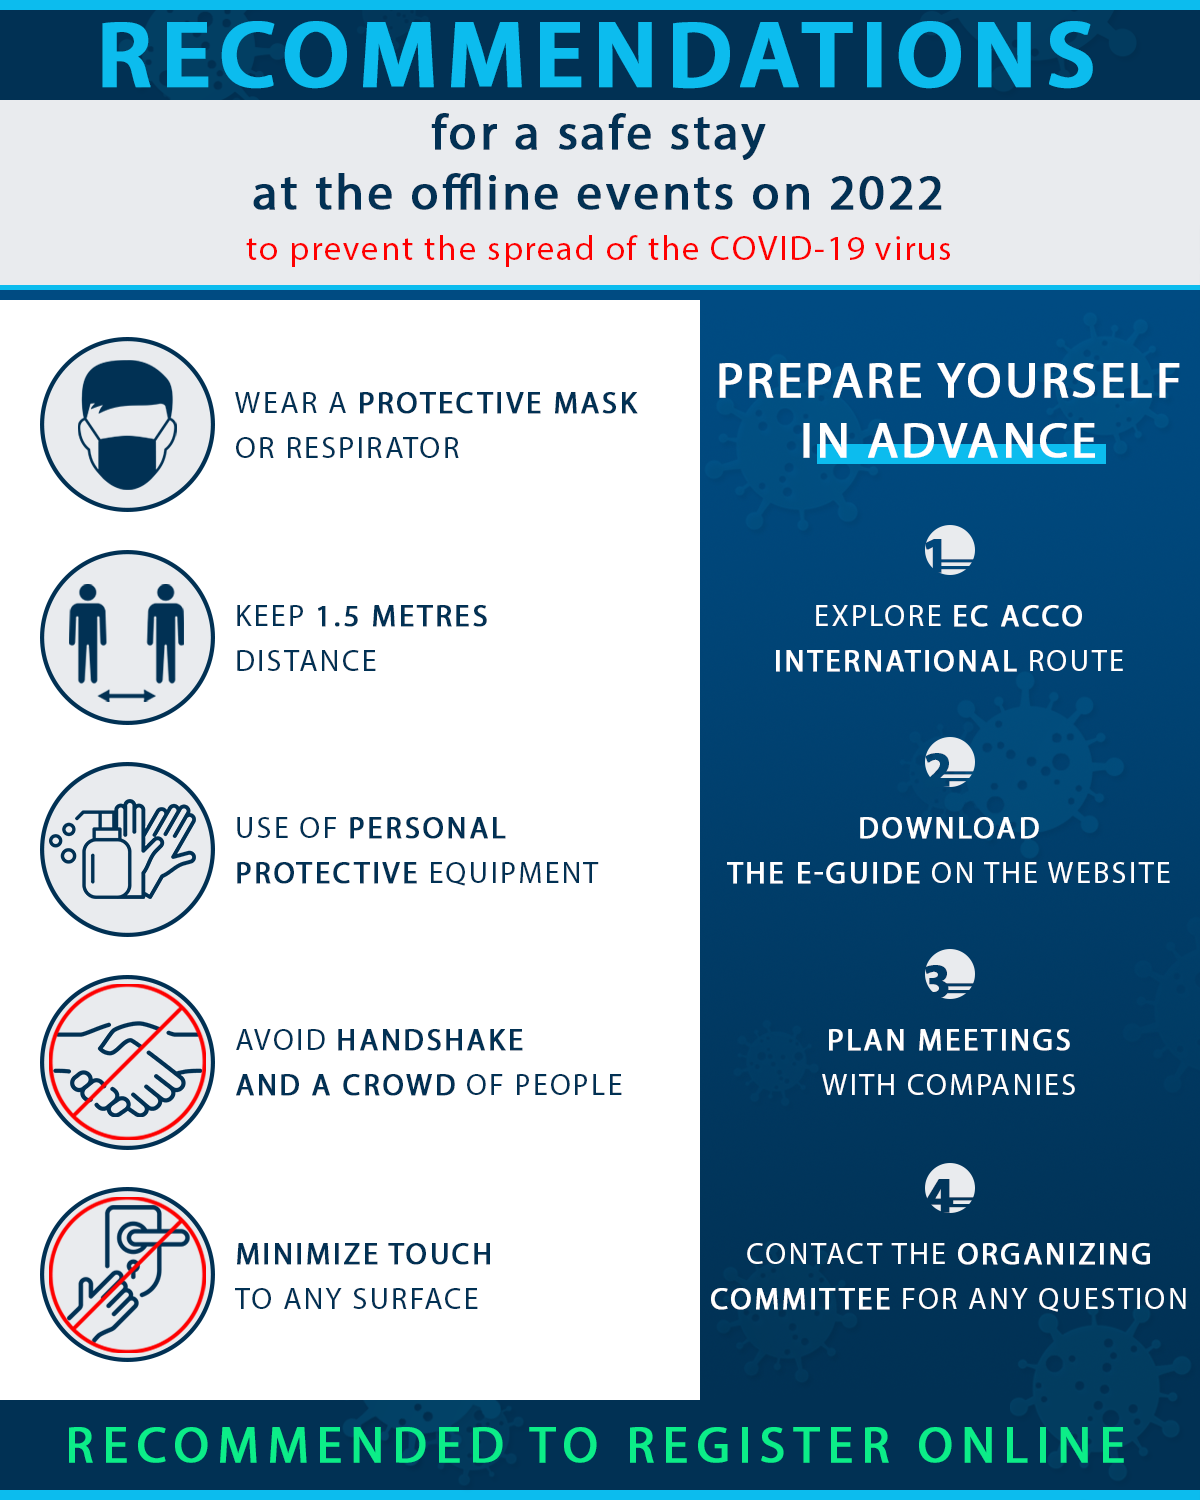 Recommended Rules for Safe Stay at MedForum